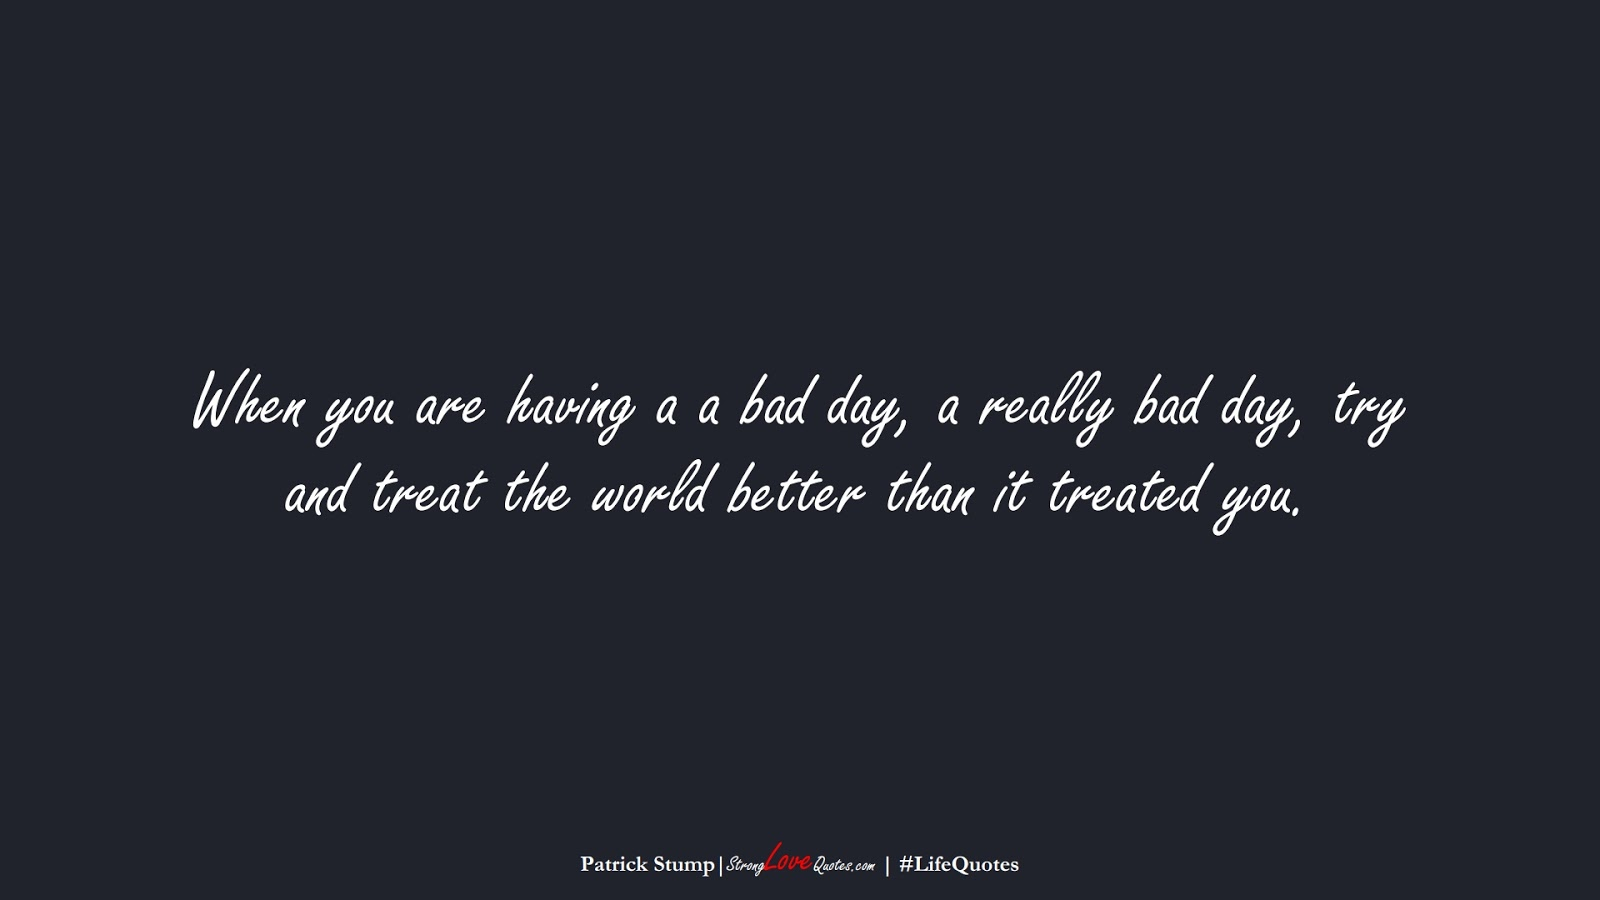 When you are having a a bad day, a really bad day, try and treat the world better than it treated you. (Patrick Stump);  #LifeQuotes